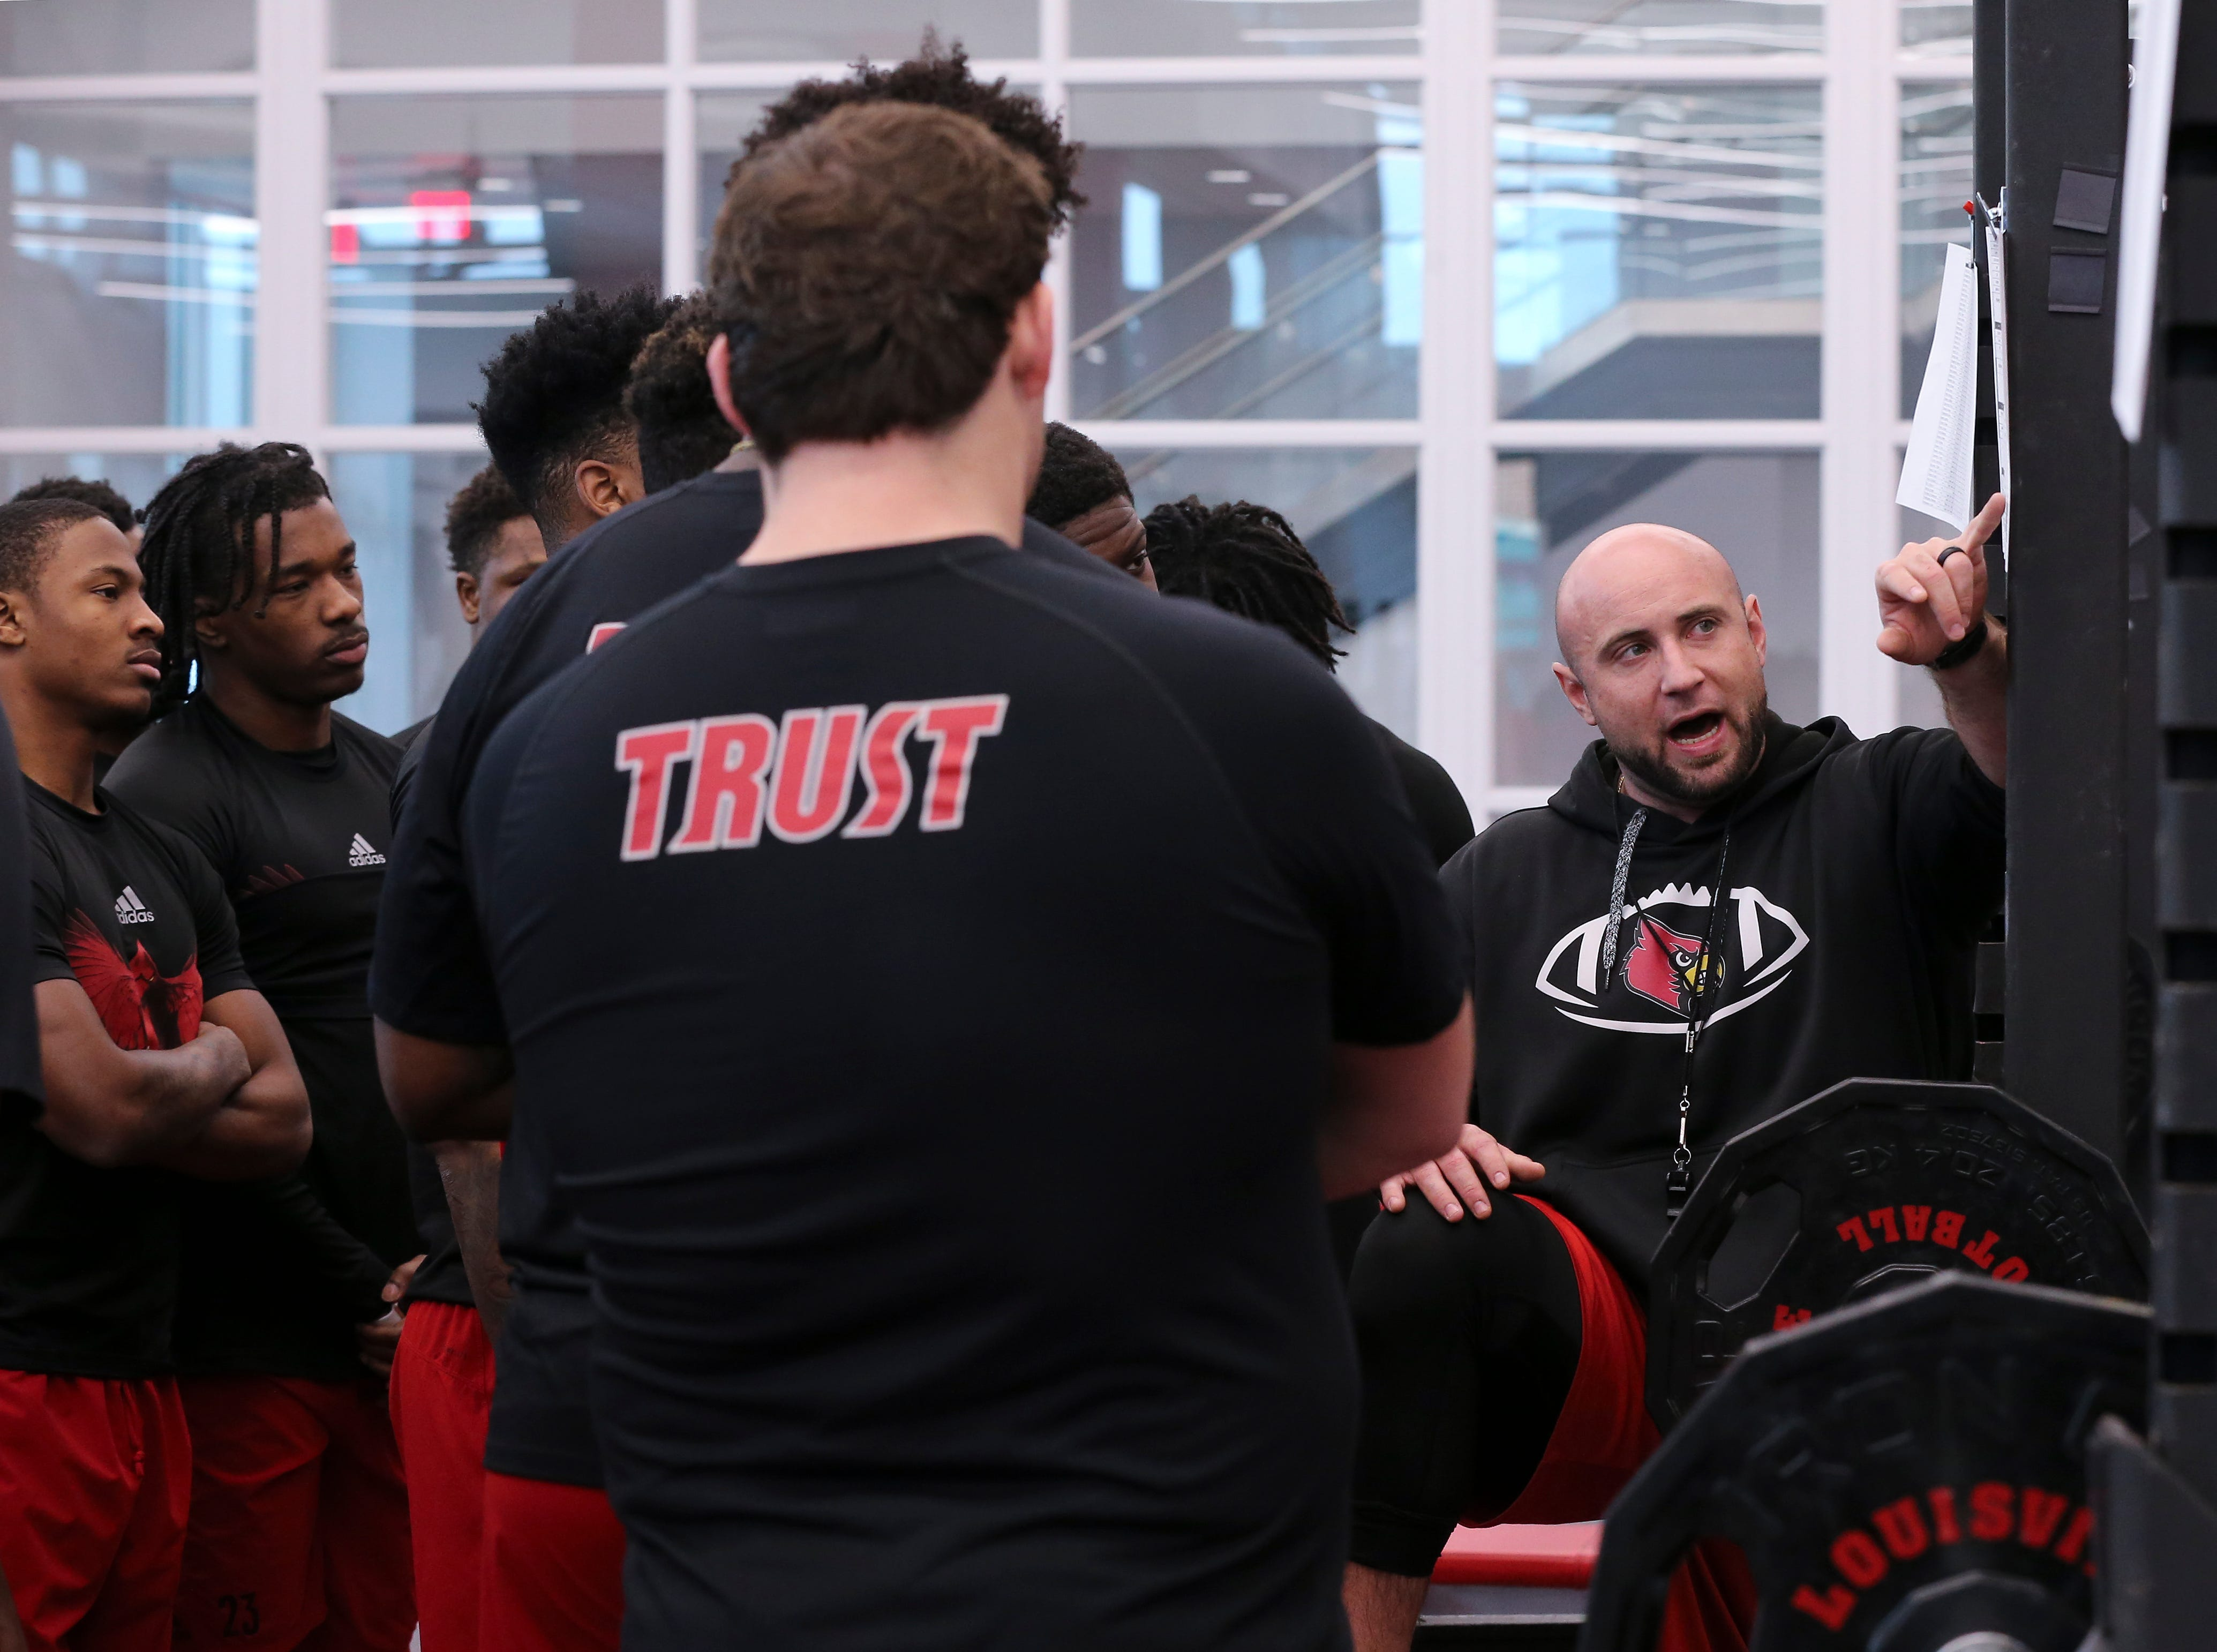 U of L strength coach Mike Sirignano, right, explains the day's schedule just before the team workout at Schnellenberger Complex.